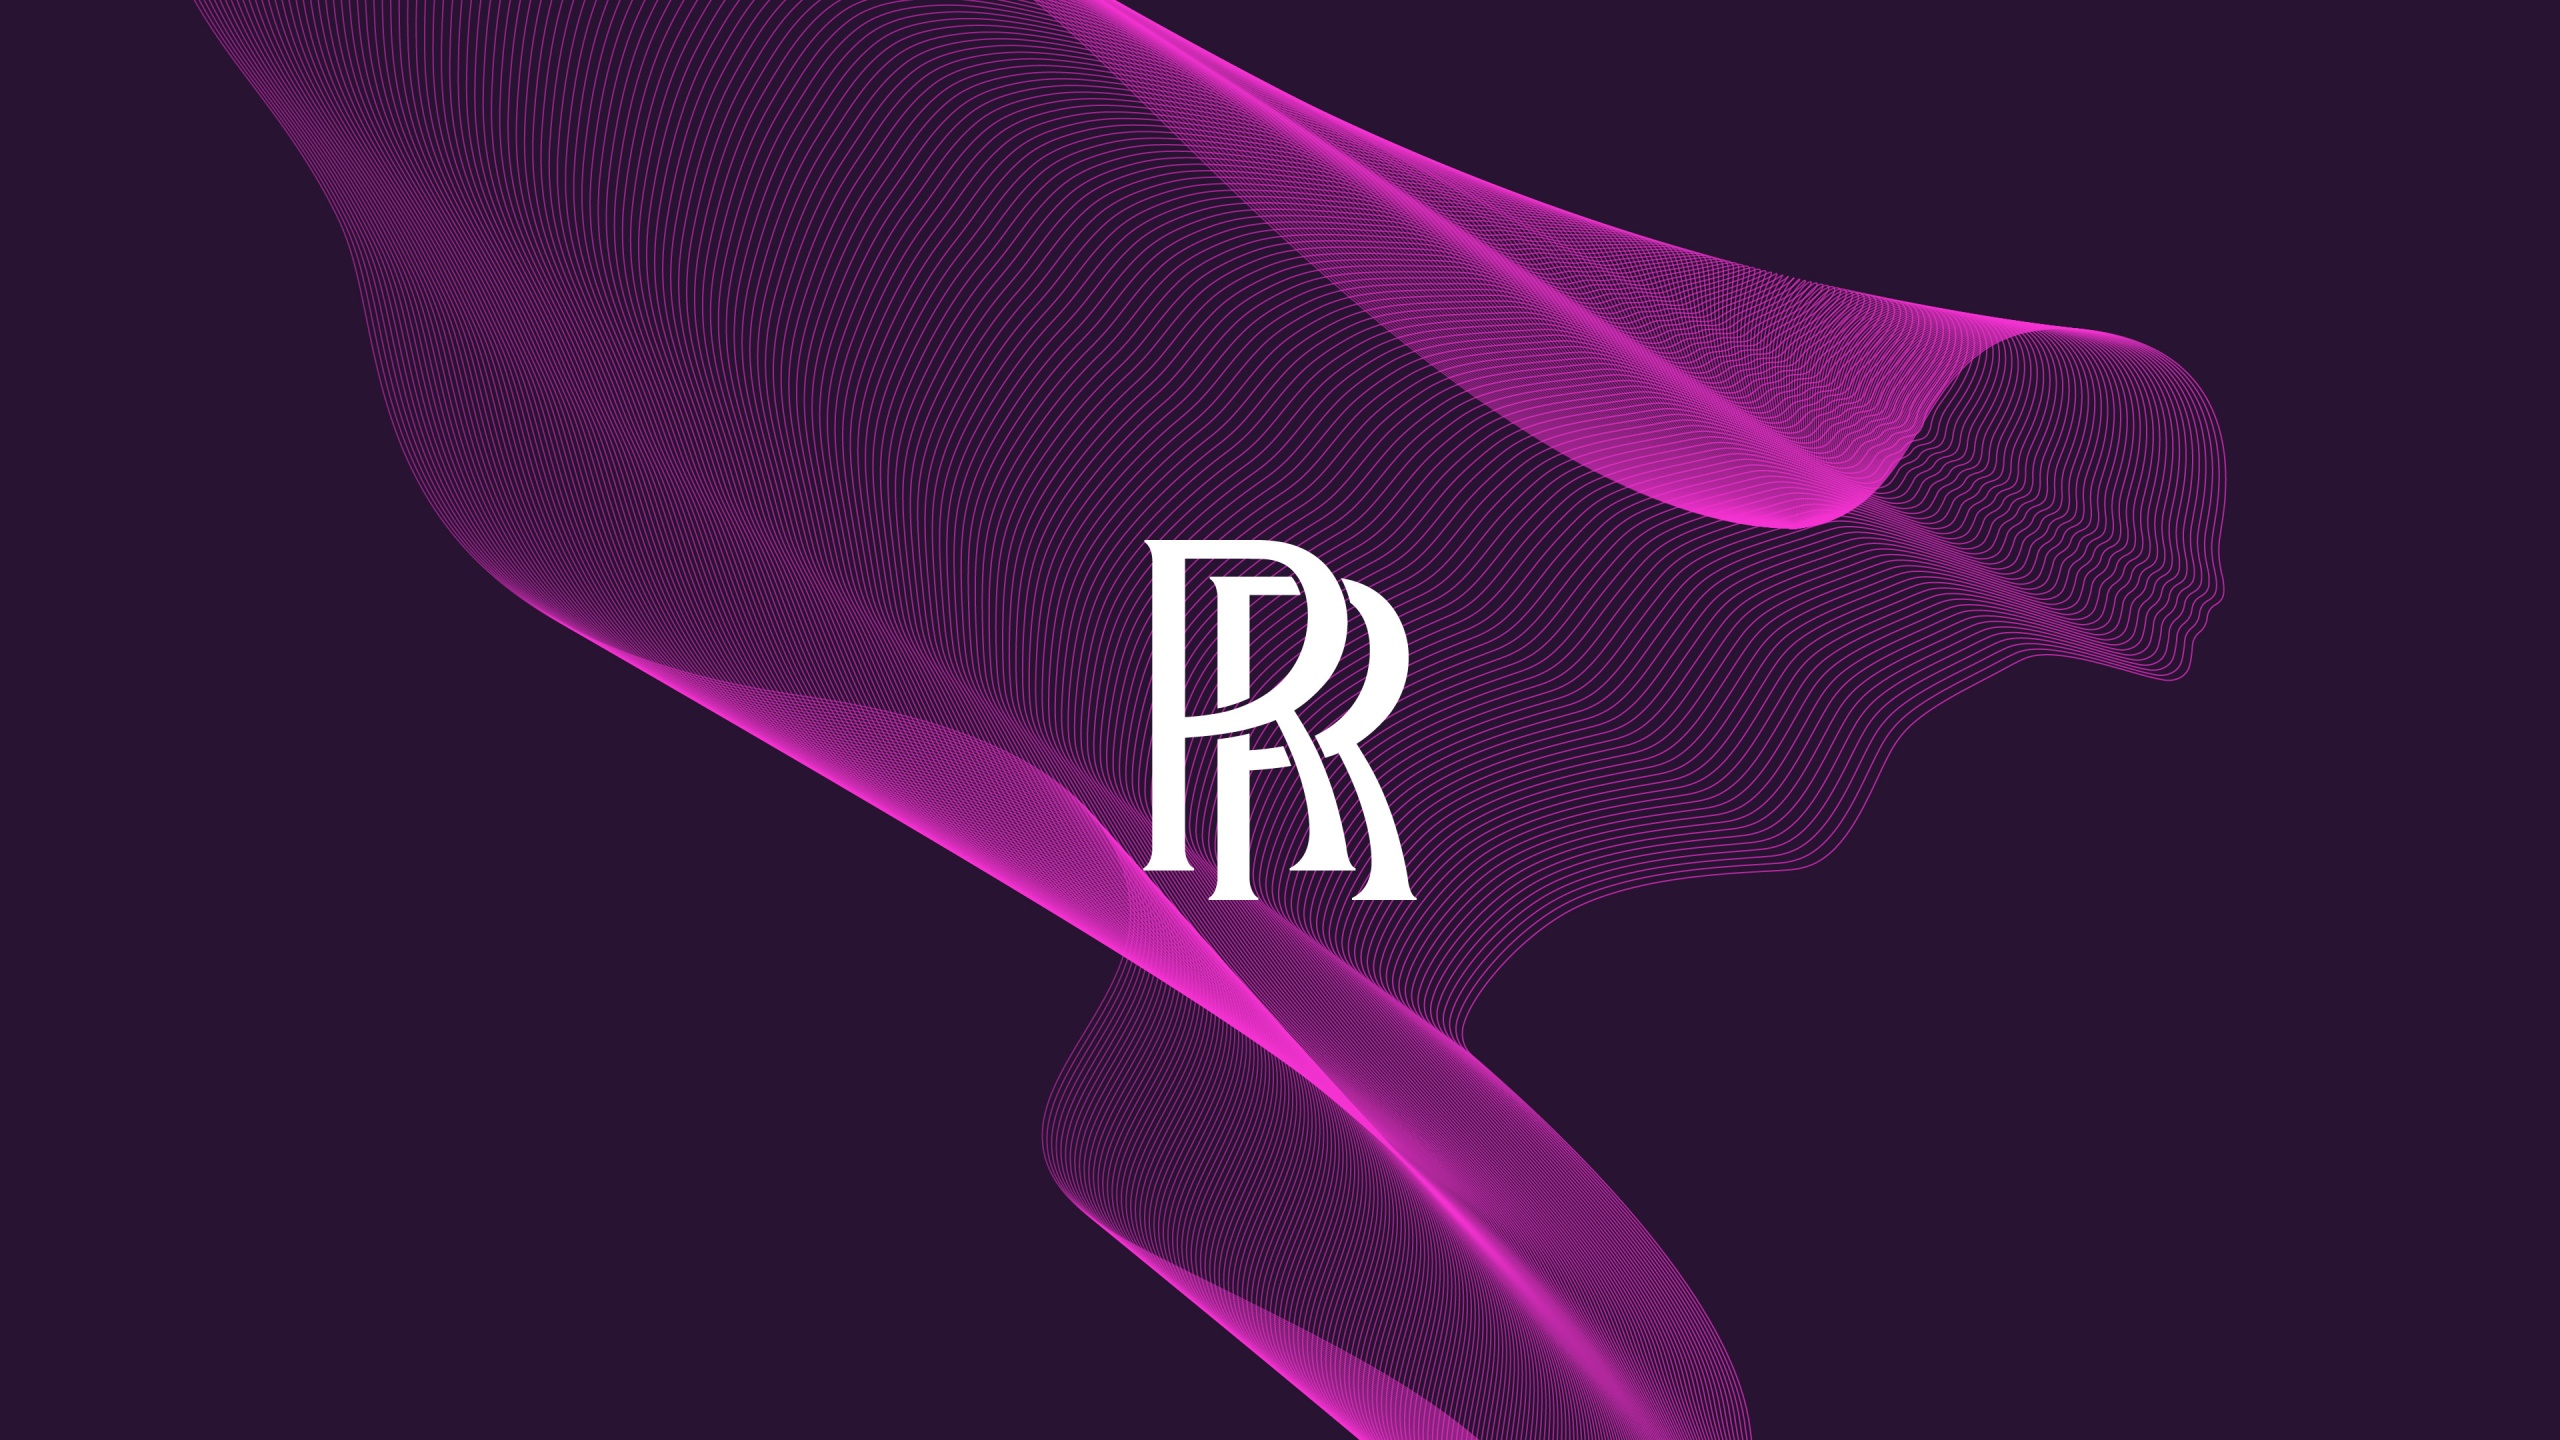 Shutterstock.com sizing the walls sizing allows you to maneuver the paper into position on the wall without tearing. Rolls-Royce 4K Wallpaper, Purple background, Logo, Cars, #3880